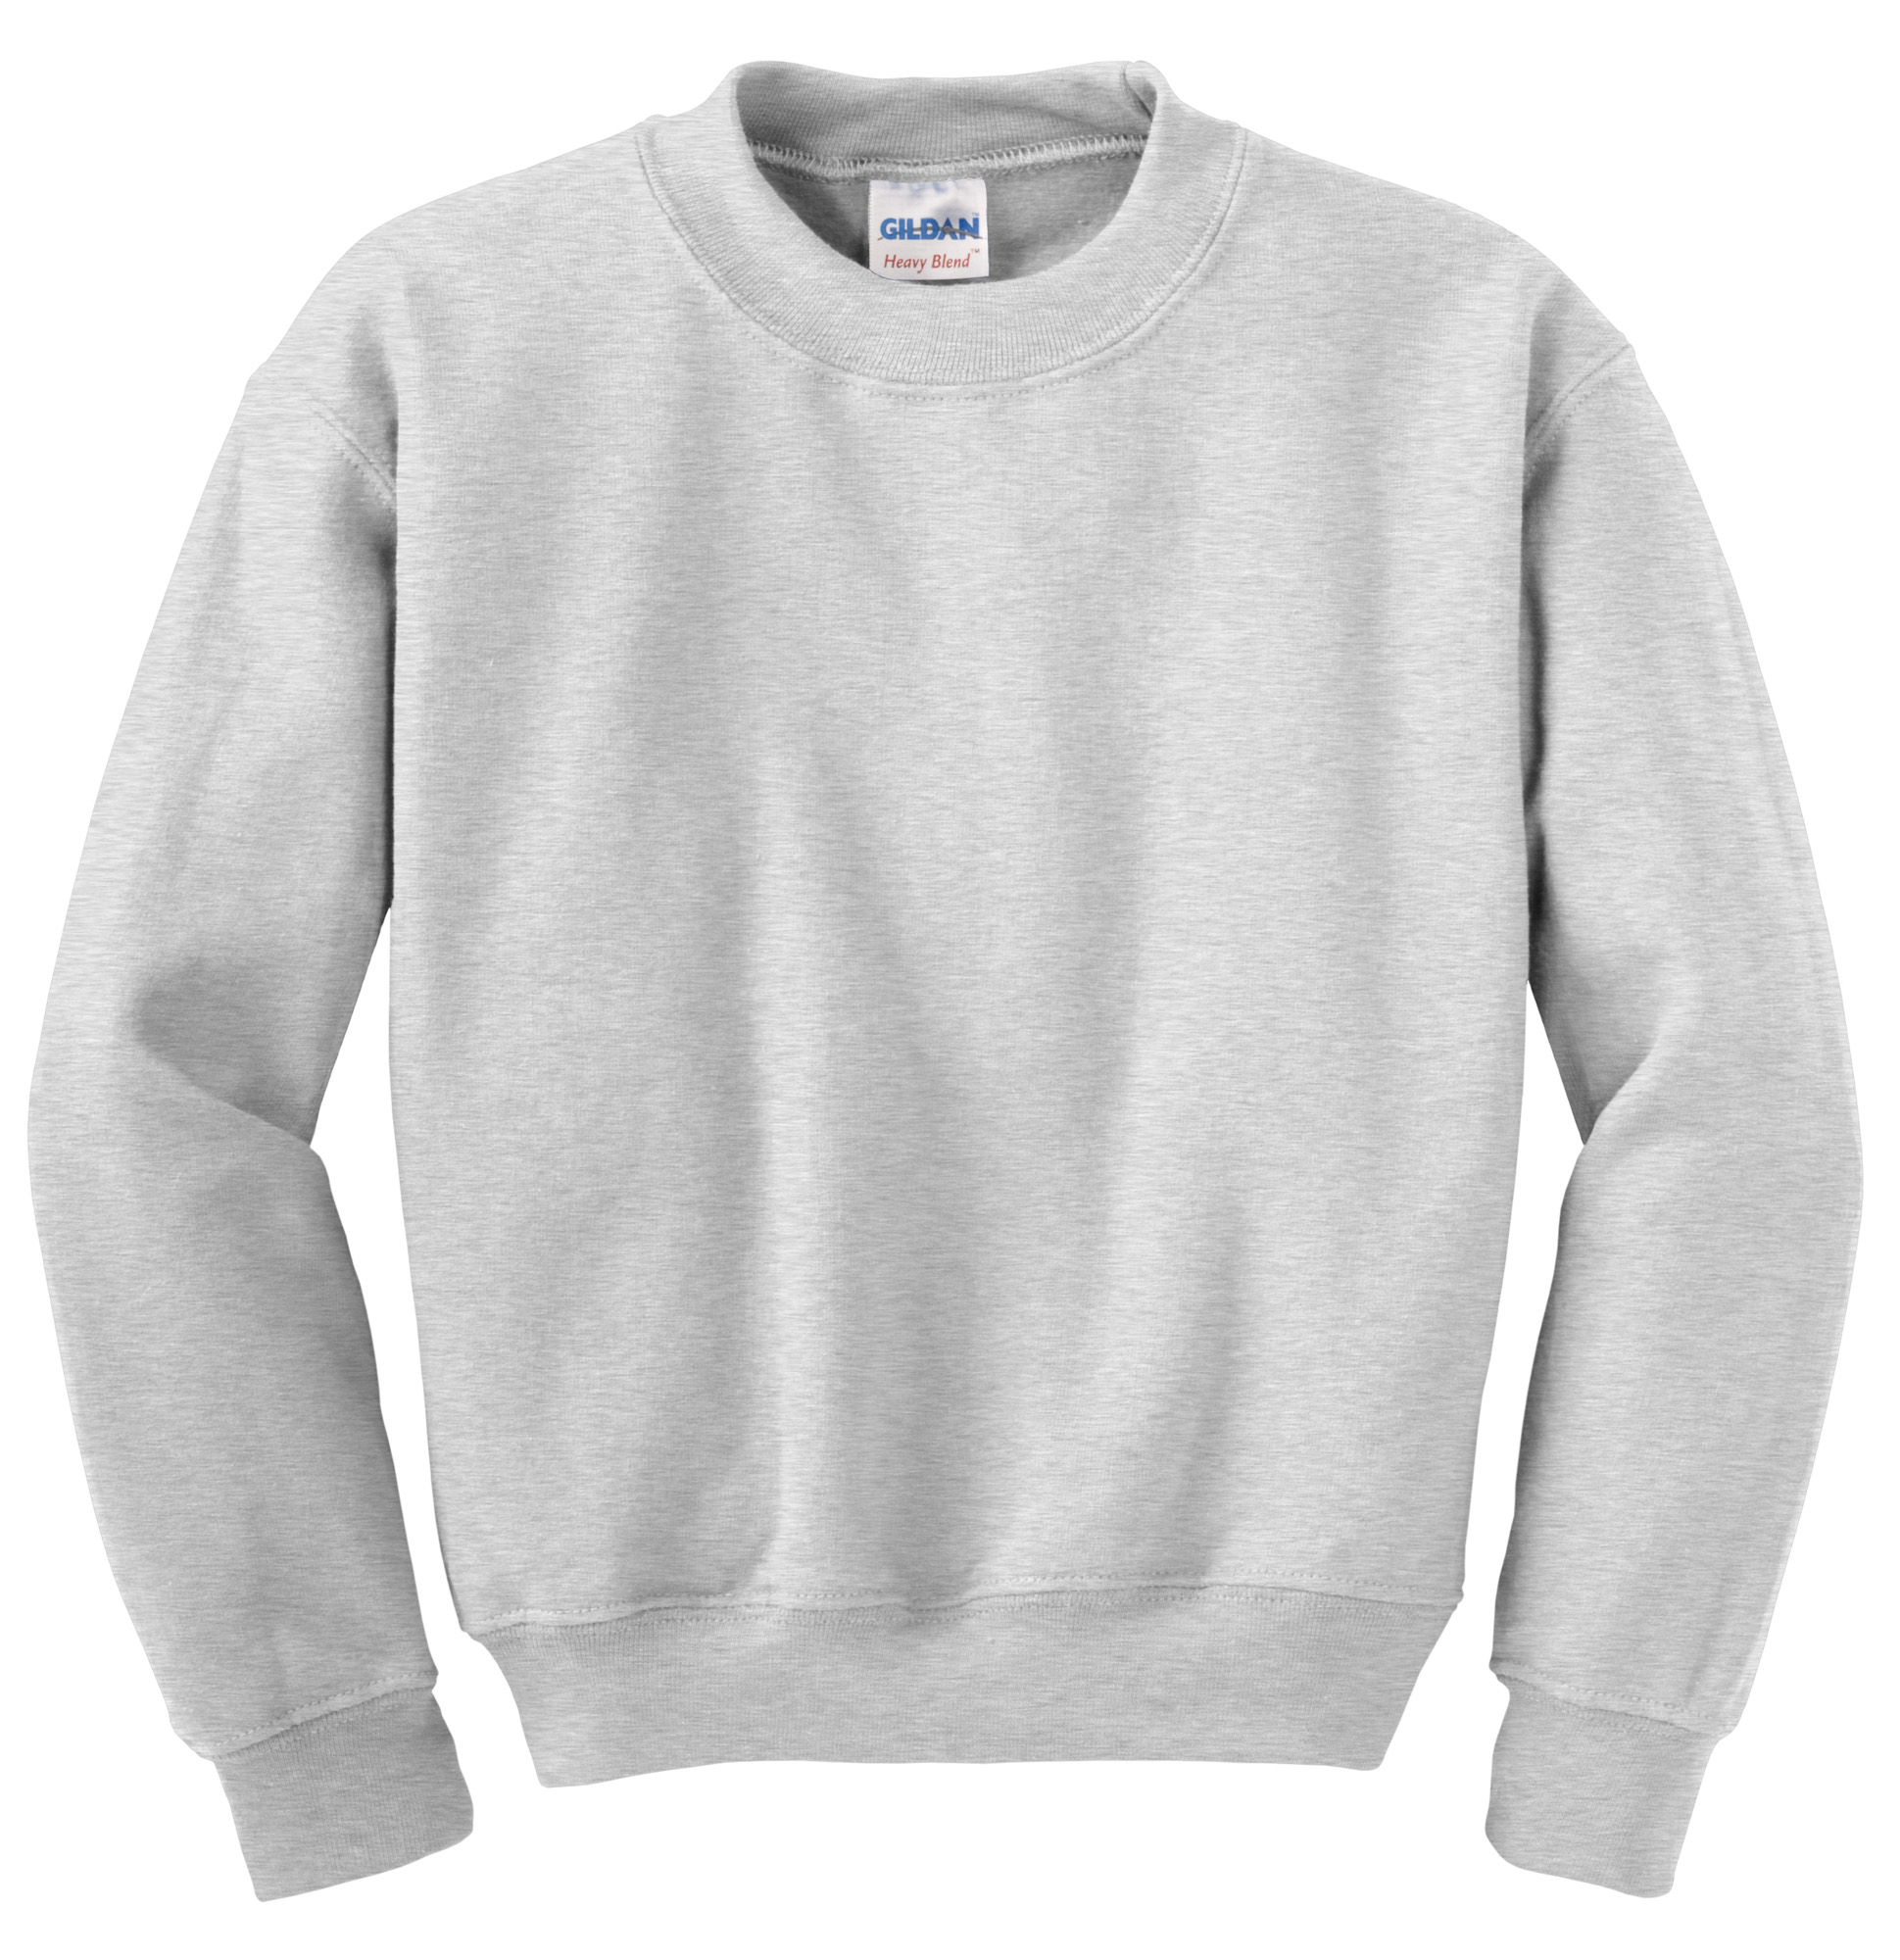 Gildan – Youth Heavy Blend™ Crewneck Sweatshirt. 18000B | Supply ...